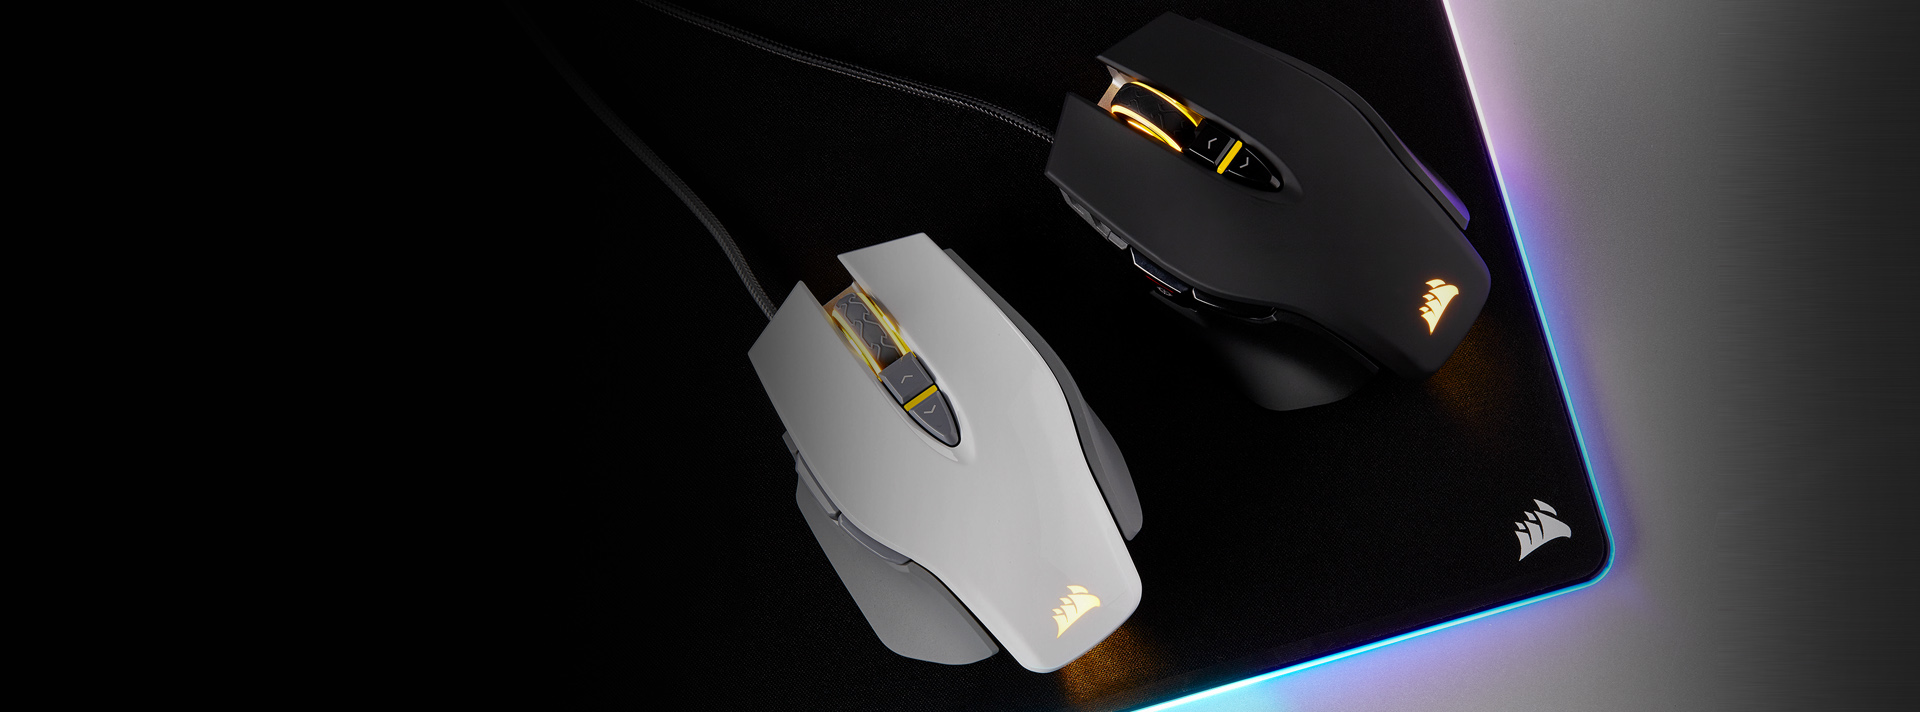 TLC_M65_RGB_ELITE_mice